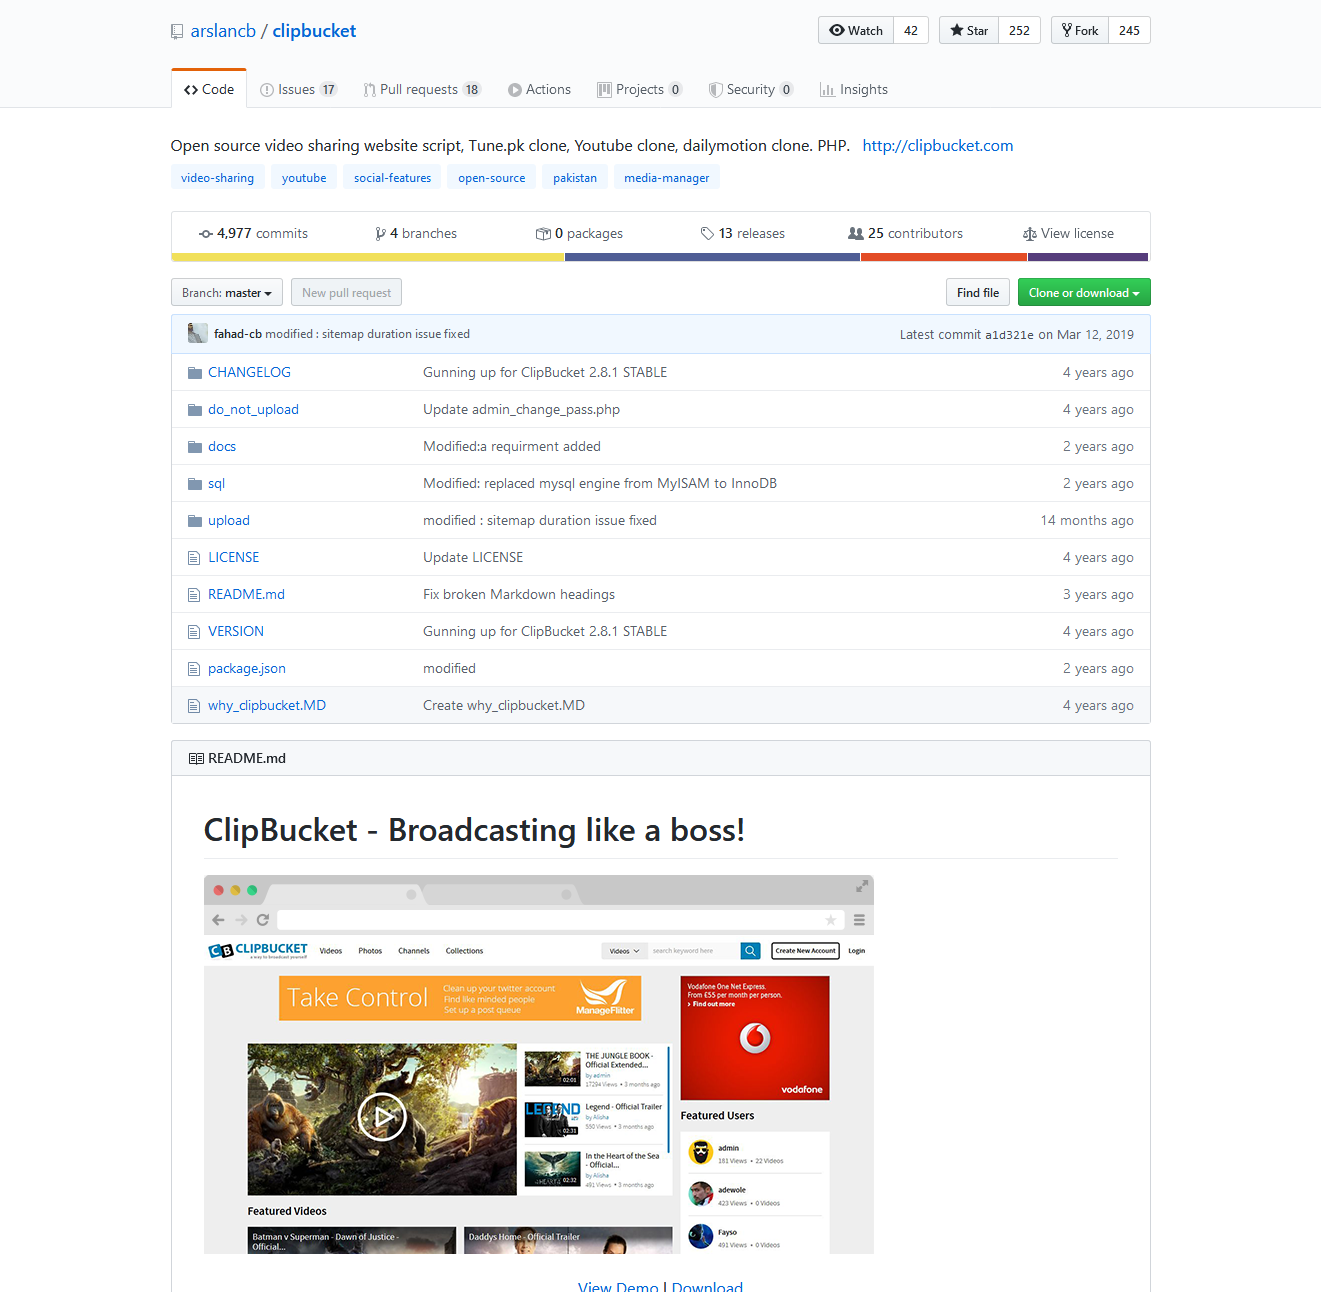 ClipBucket's repository on Github